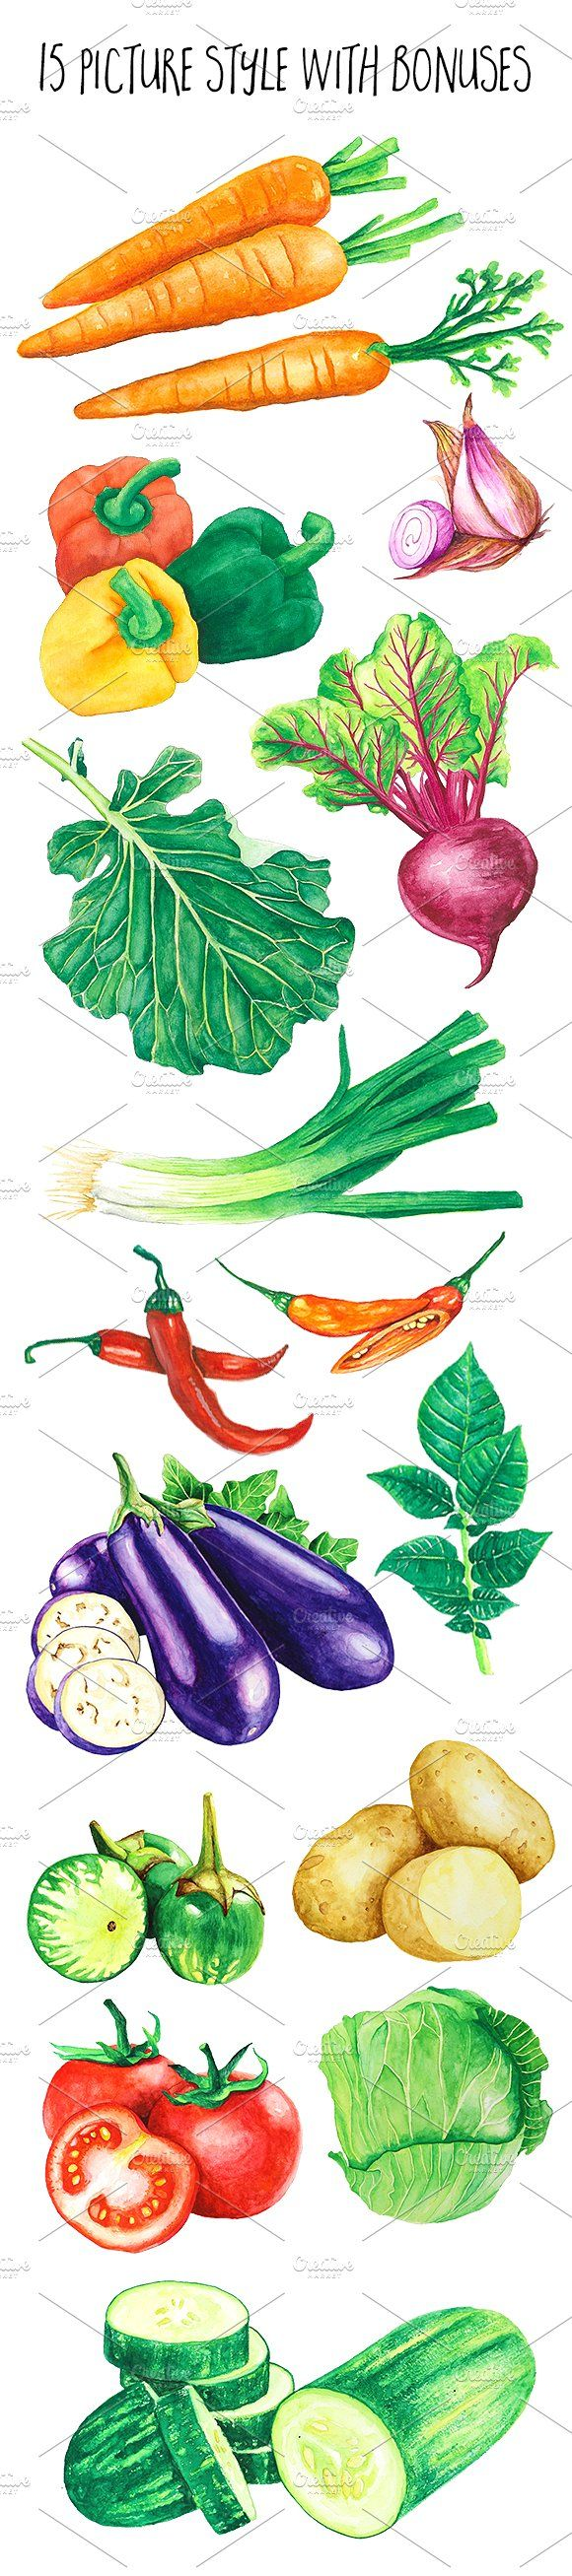 Vegetables Watercolor Illustration by andypray on @creativemarket